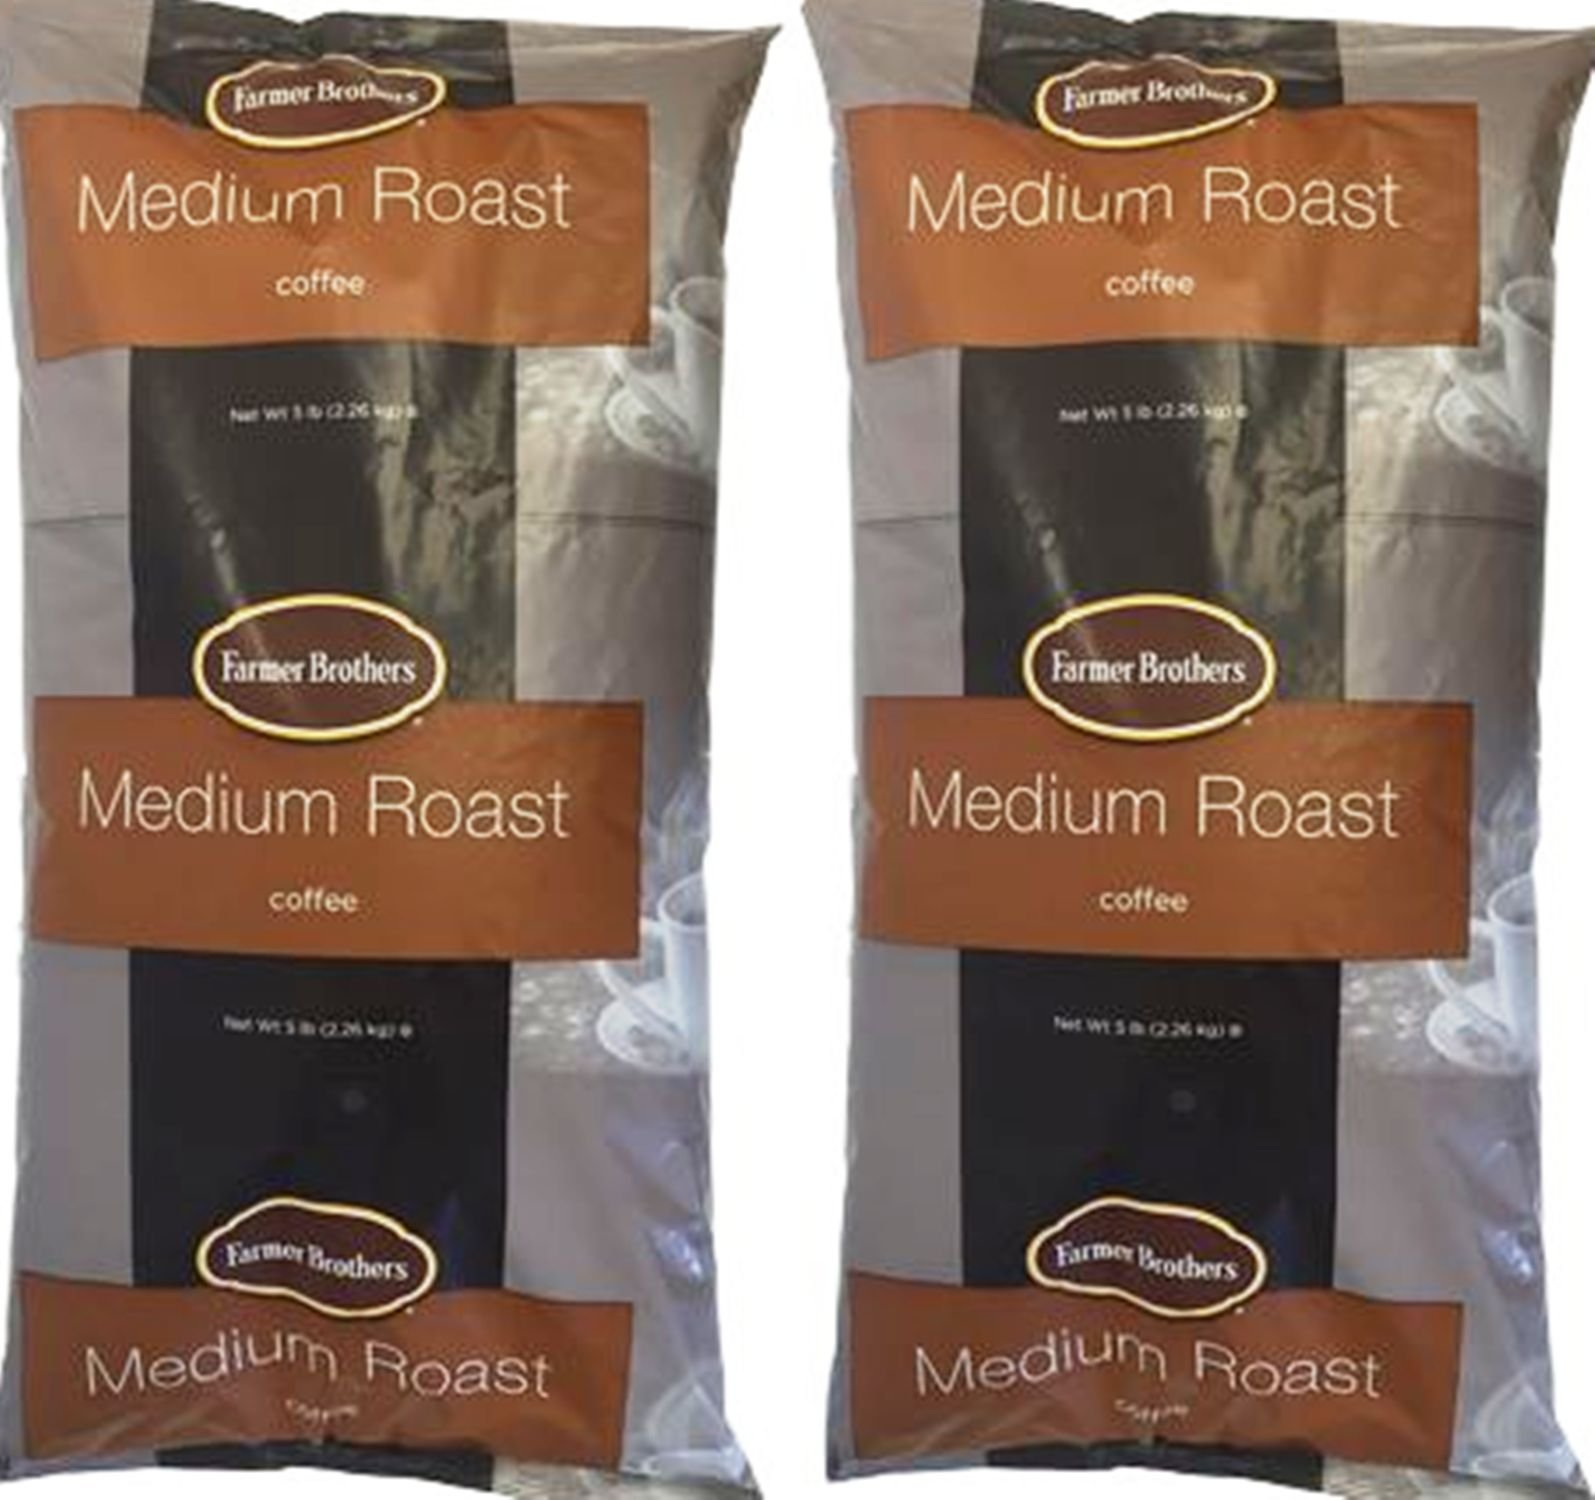 Farmer Brothers Medium Roast Ground Coffee 2 X 5lbs Ground Coffee 1271-2 by Farmer Brothers